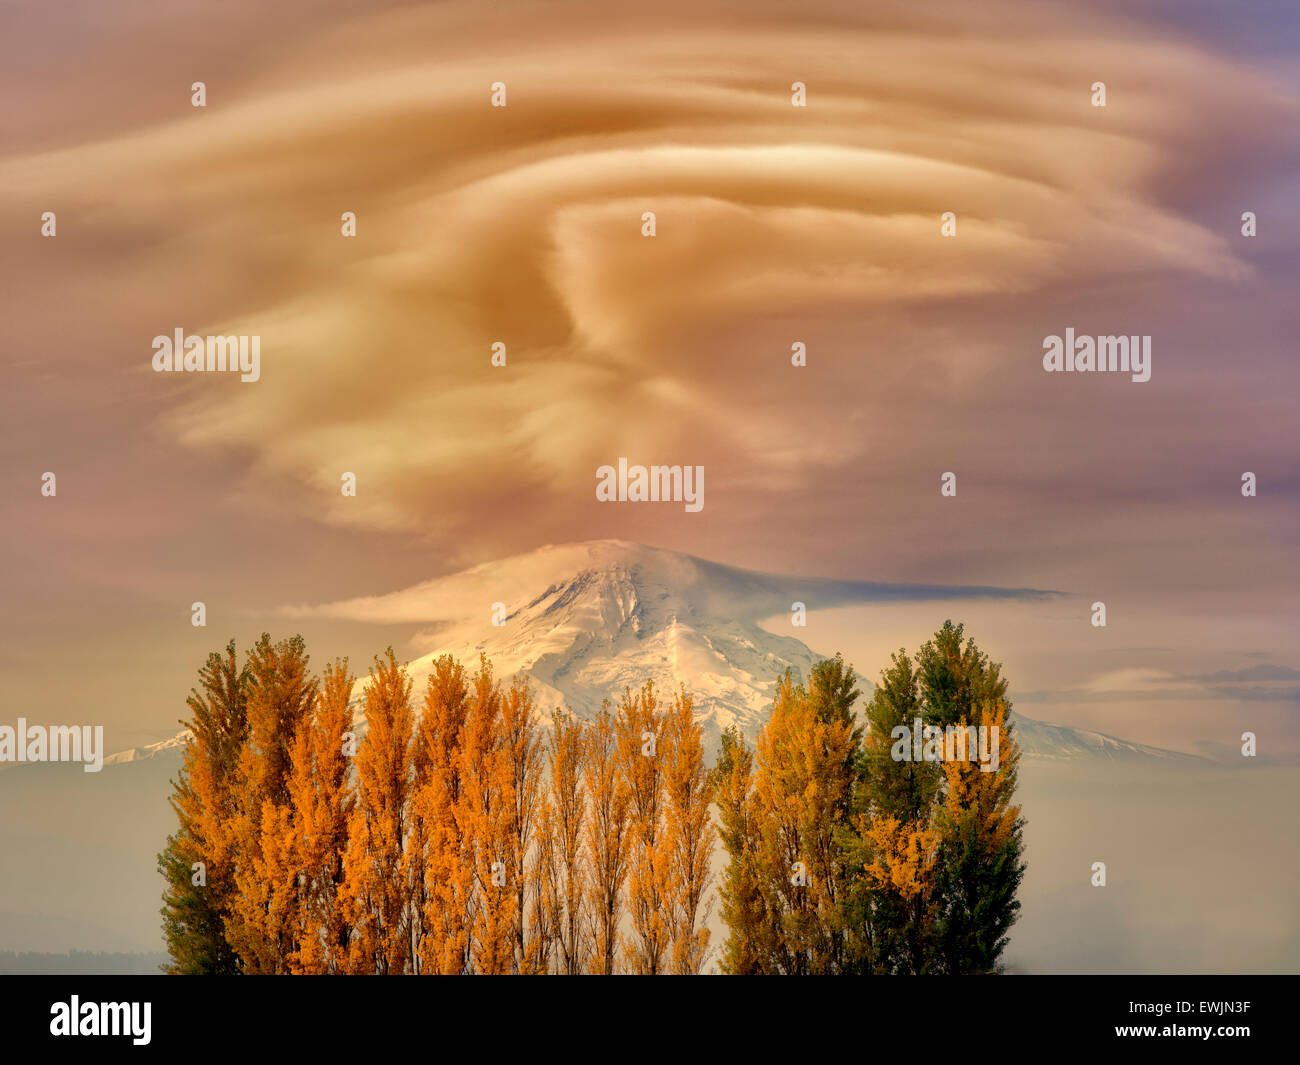 Mt. Hood und Herbst farbige Pappeln. Columbia River Gorge Natioanl Scenic Area, Washington Stockbild